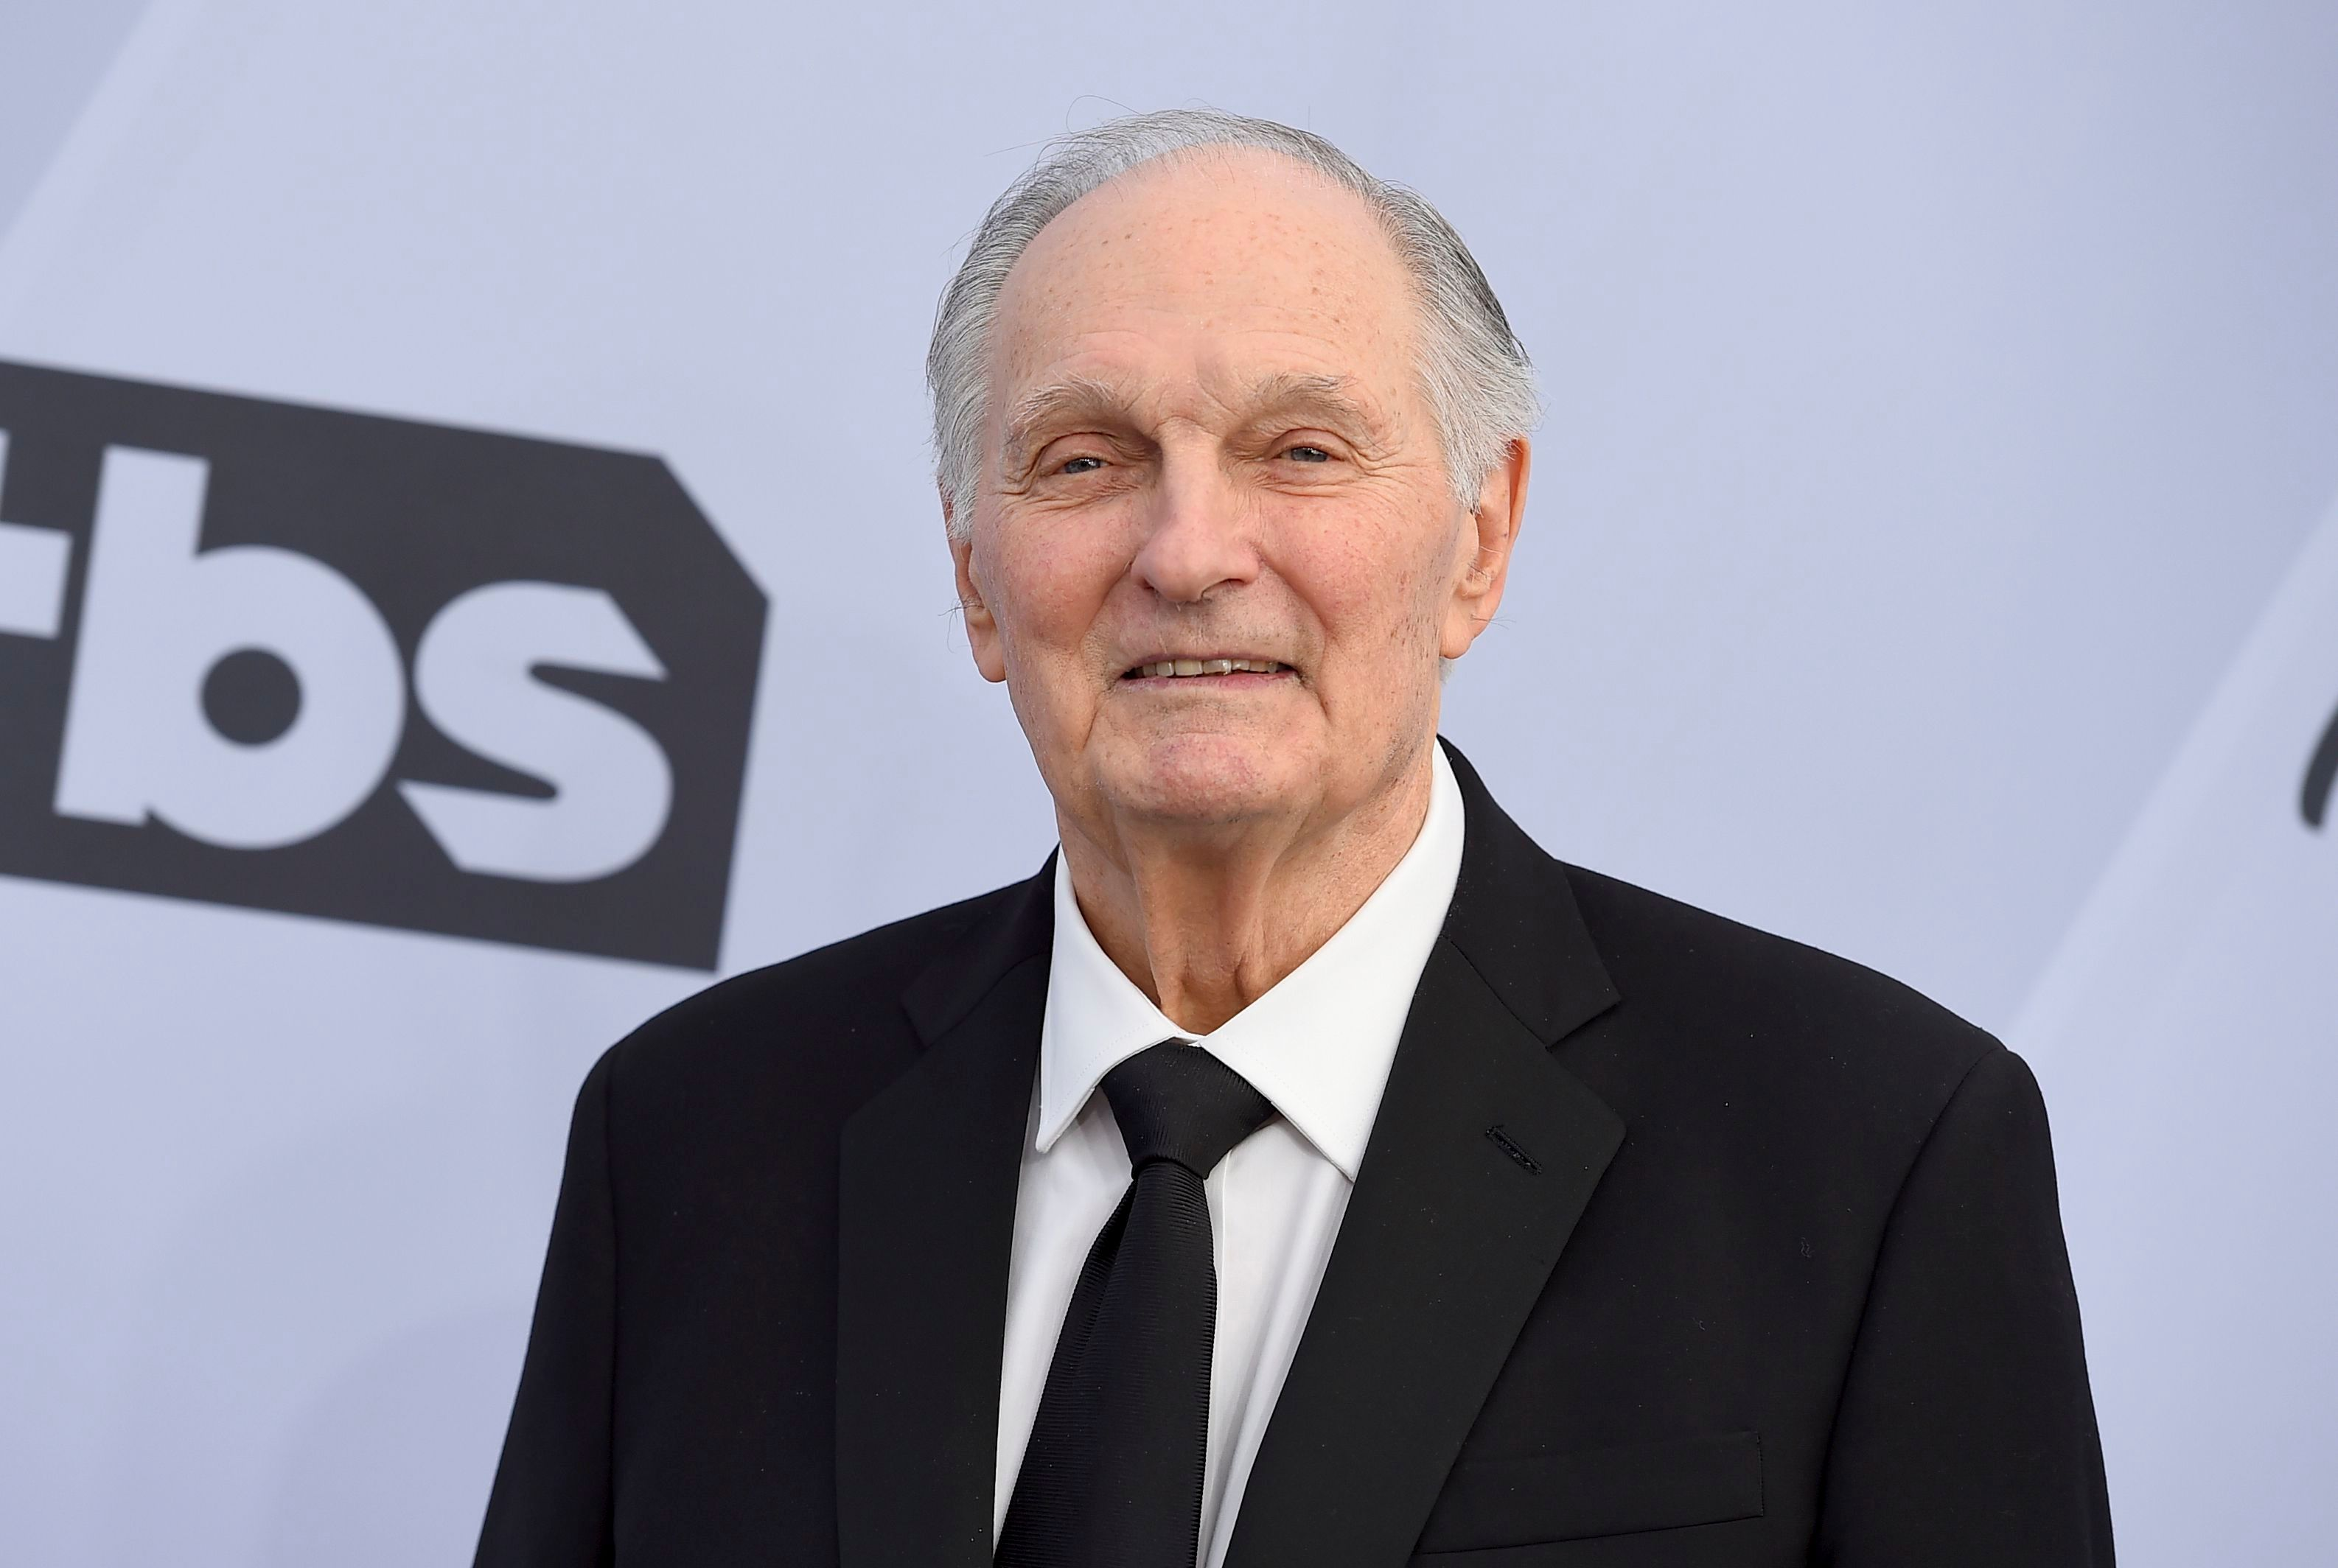 Alan Alda arrives at the 25th annual Screen Actors Guild Awards at the Shrine Auditorium & Expo Hall, in Los Angeles25th Annual SAG Awards - Arrivals, Los Angeles, USA - 27 Jan 2019